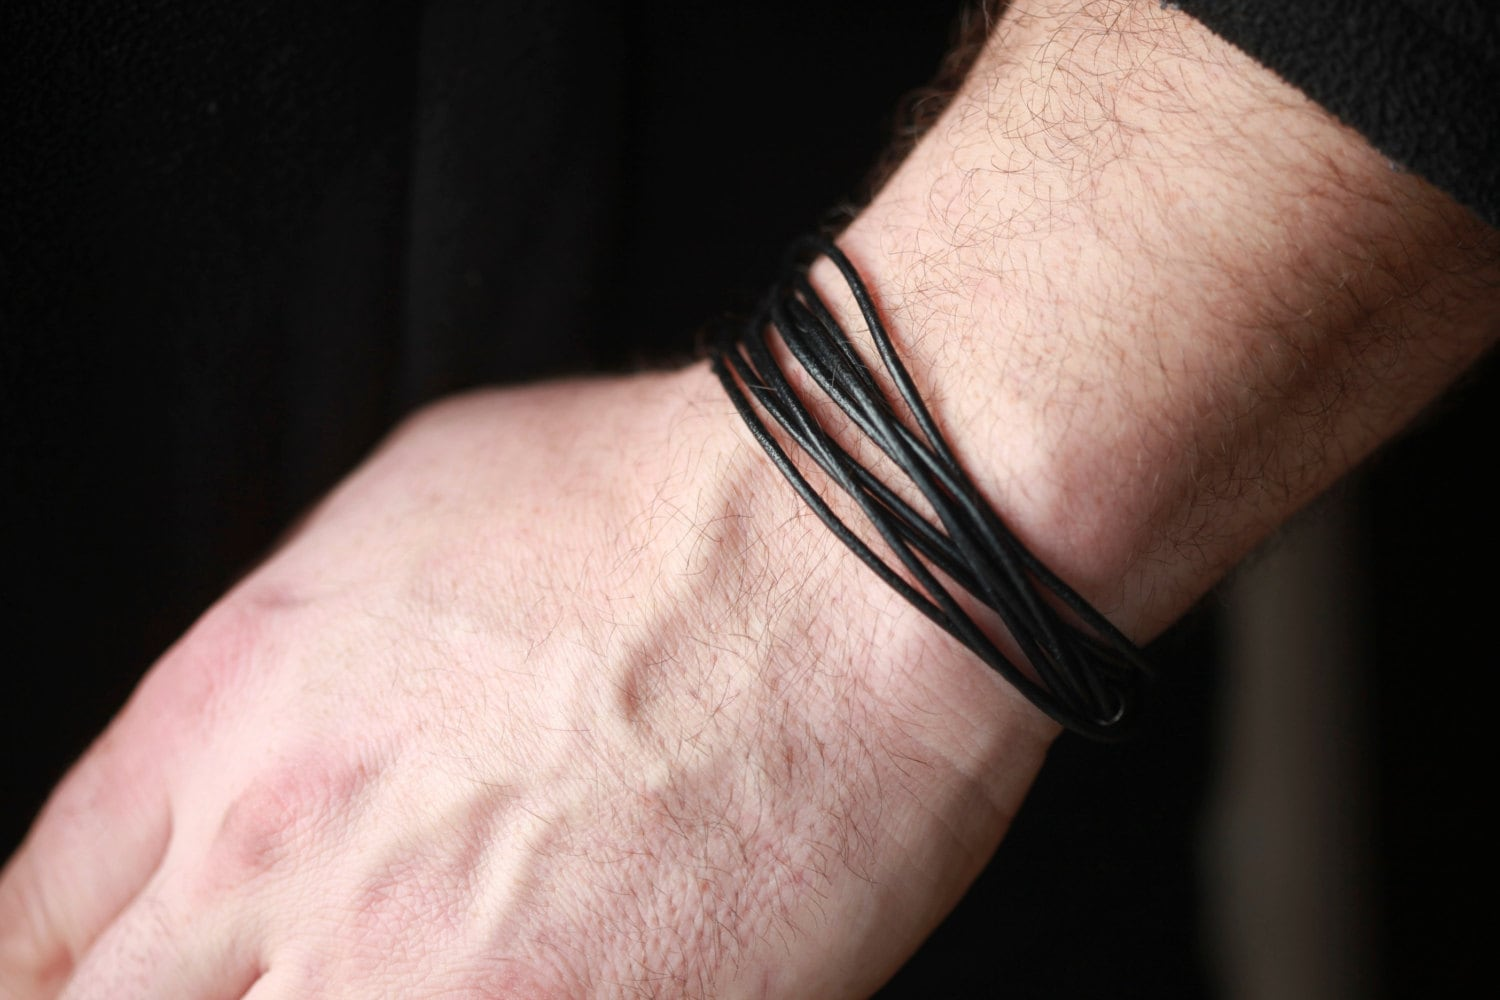 accessories mens steel men aliexpress pulseras bracelet store jewellery jewelry product com brand leather bracelets stainless from bangles buy trendy handmade black